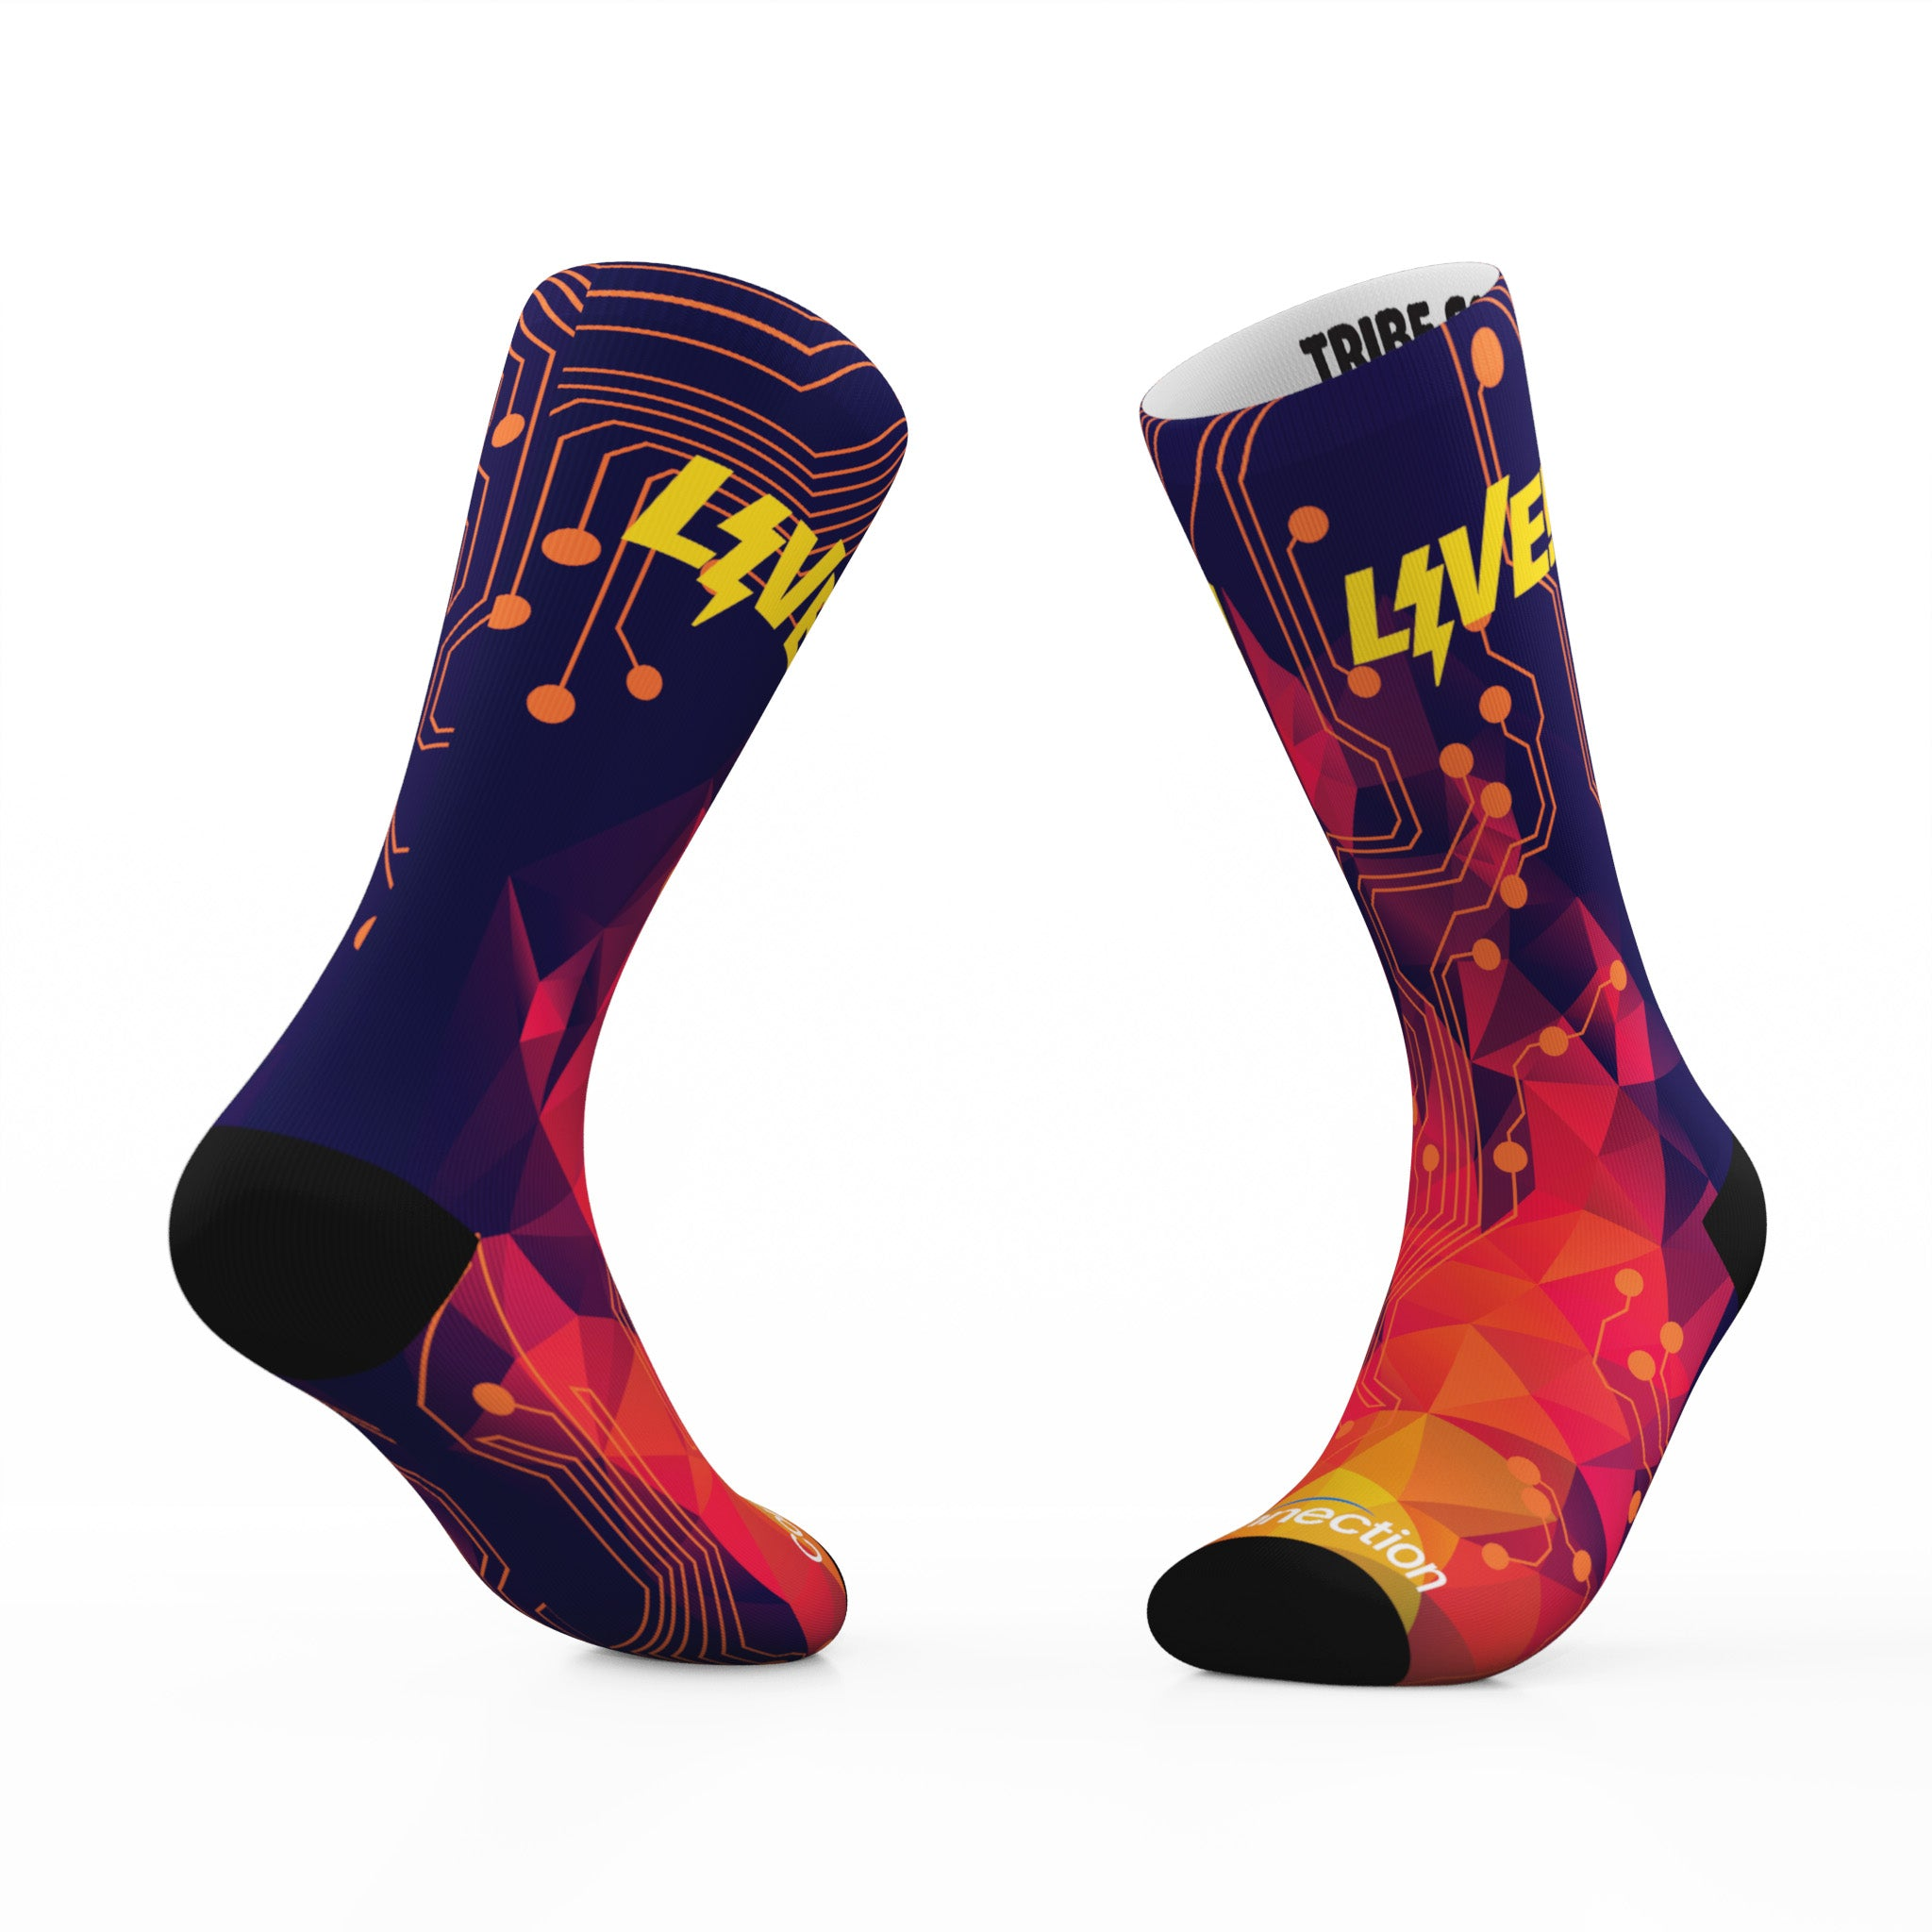 Connection.com x Tribe Socks